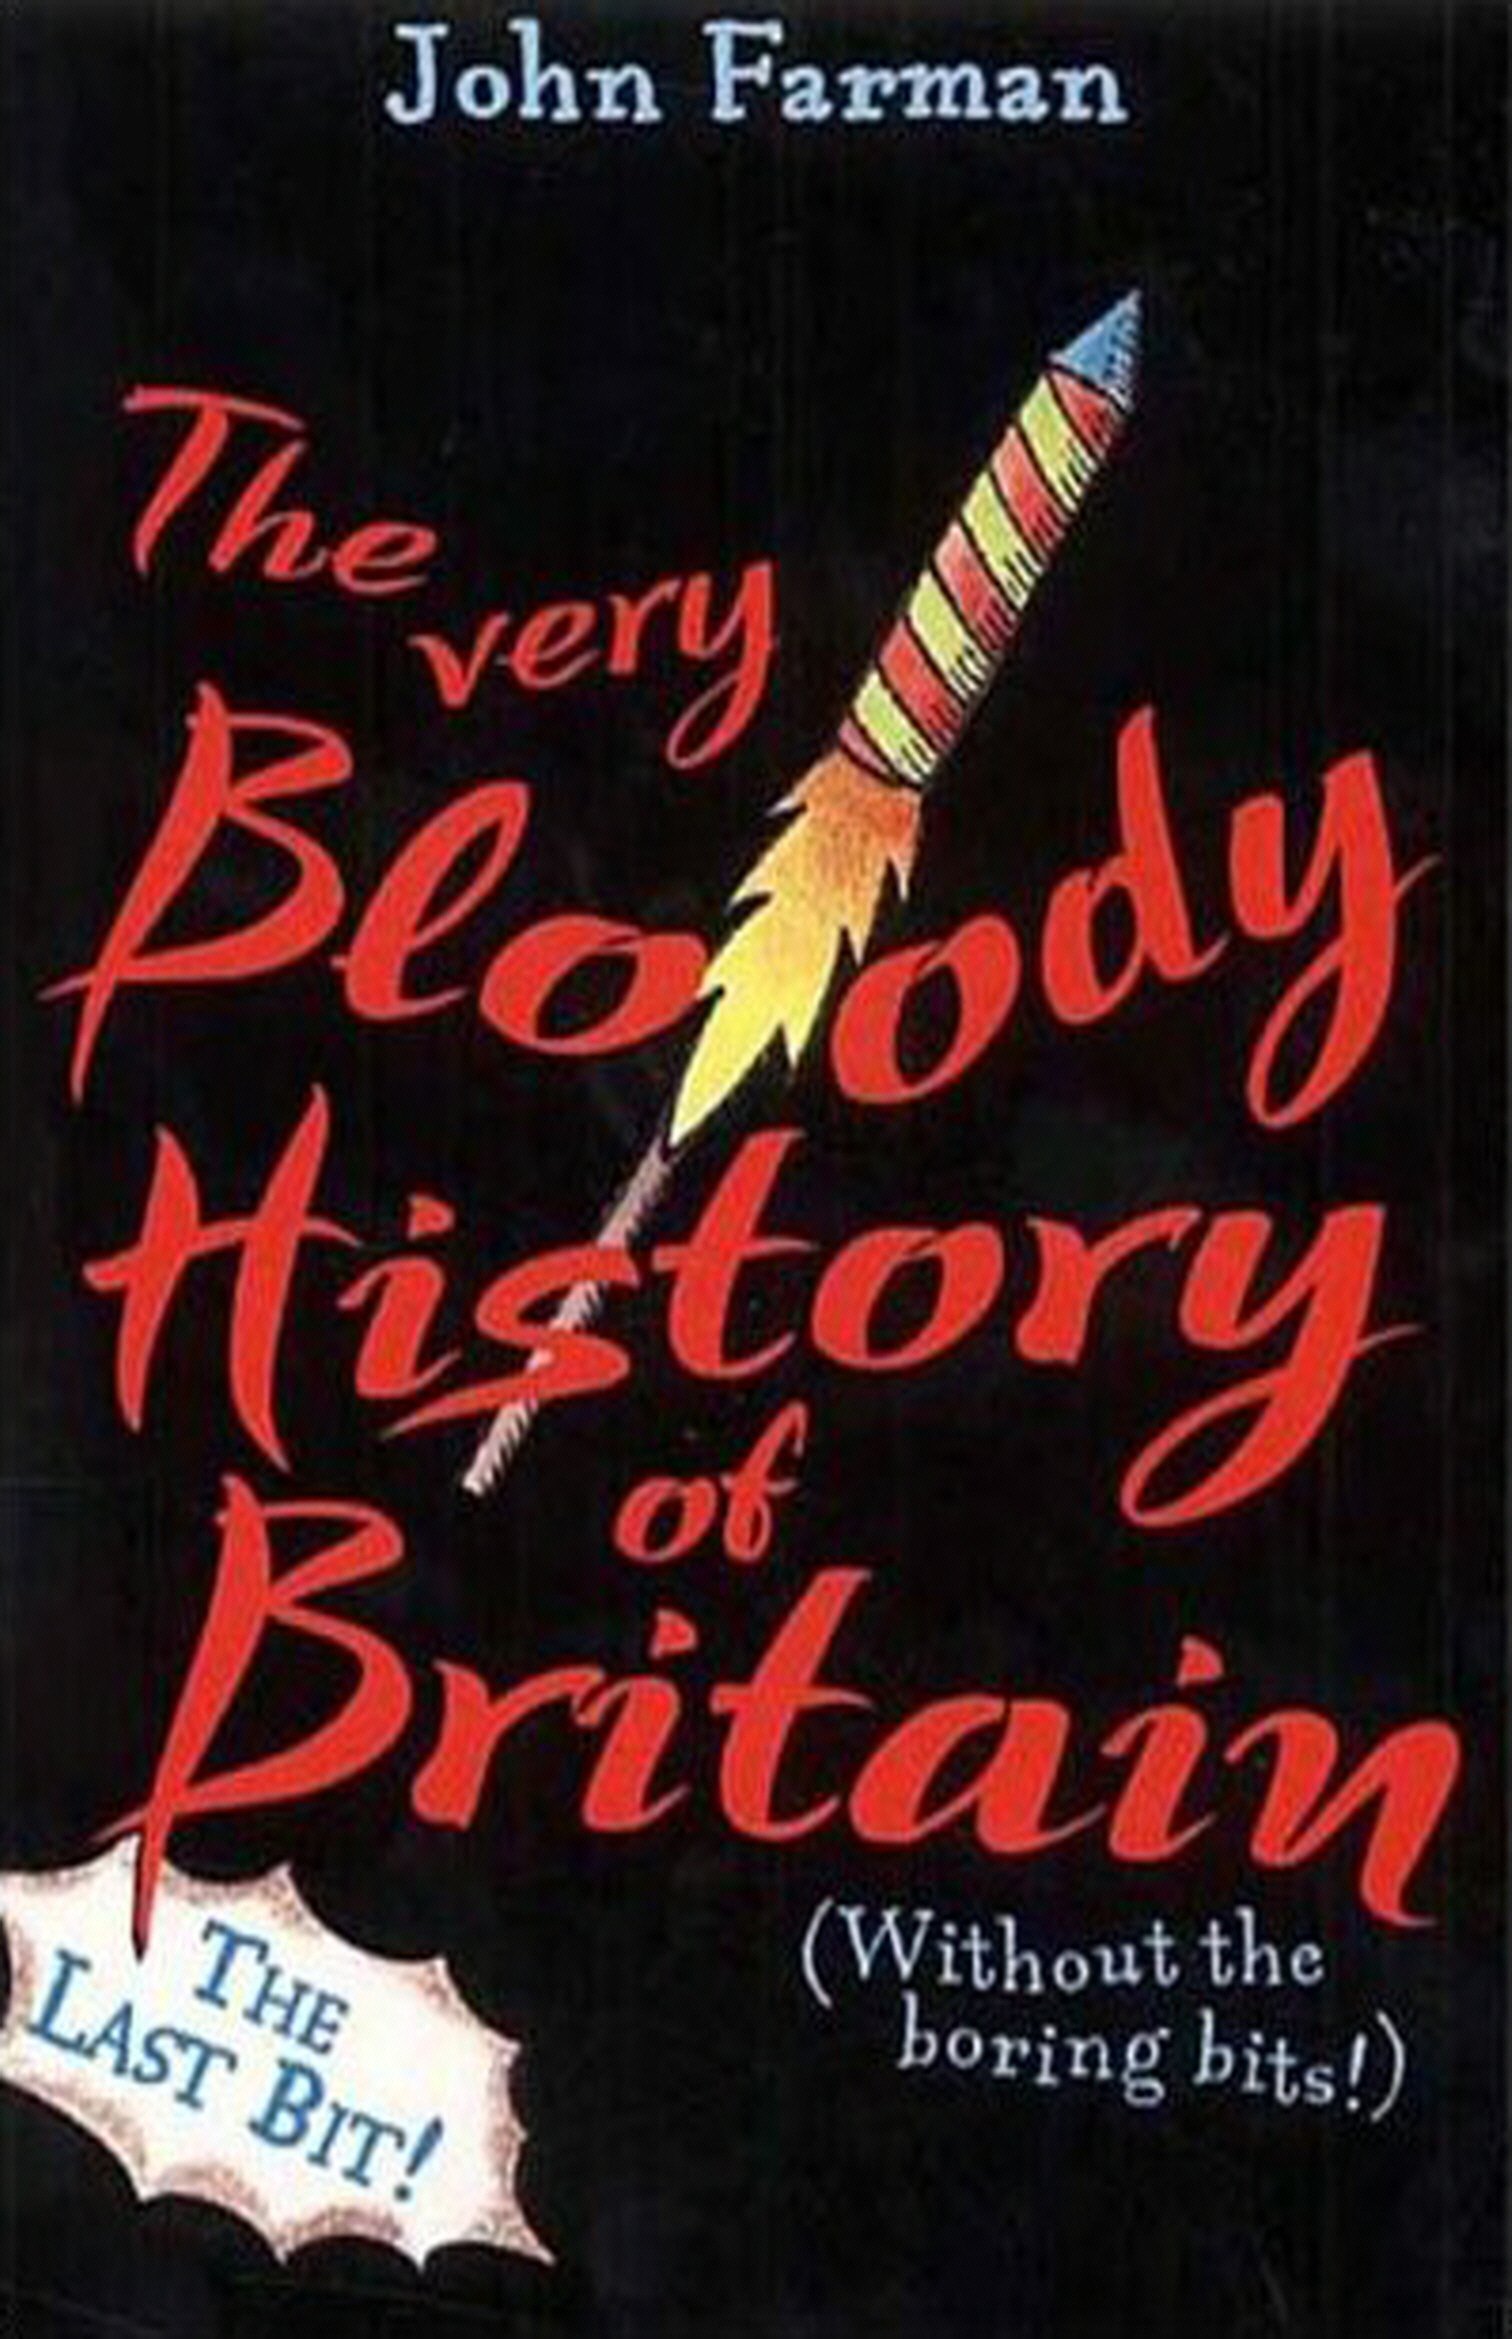 The Very Bloody History Of Britain,  2 The Last Bit!